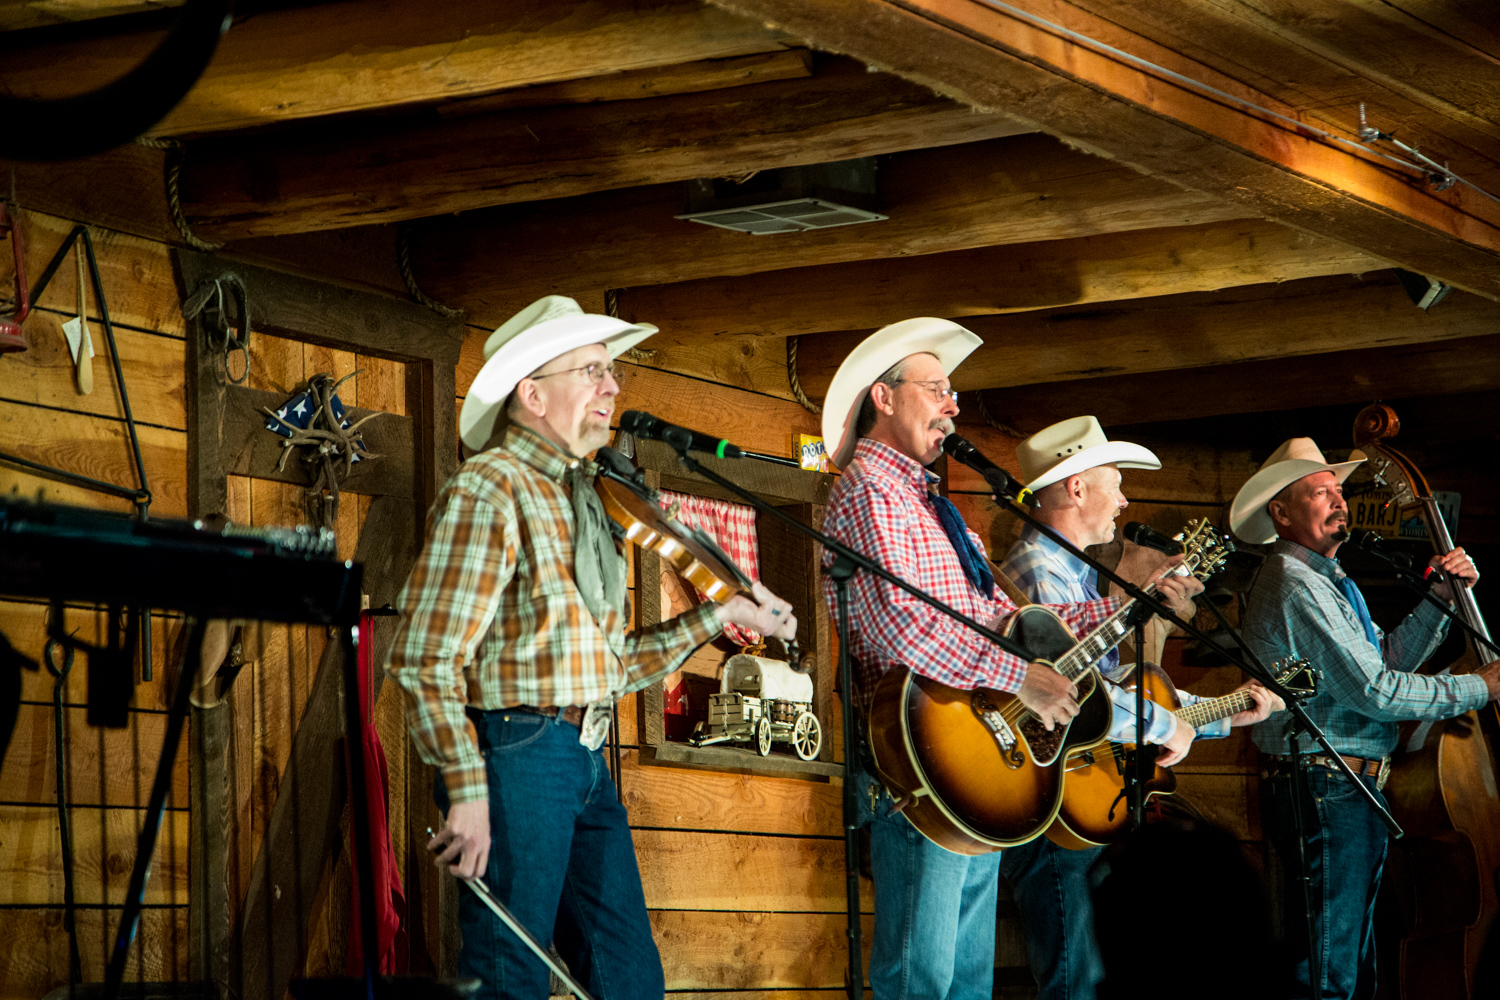 Bar J Chuckwagon and Dinner Show